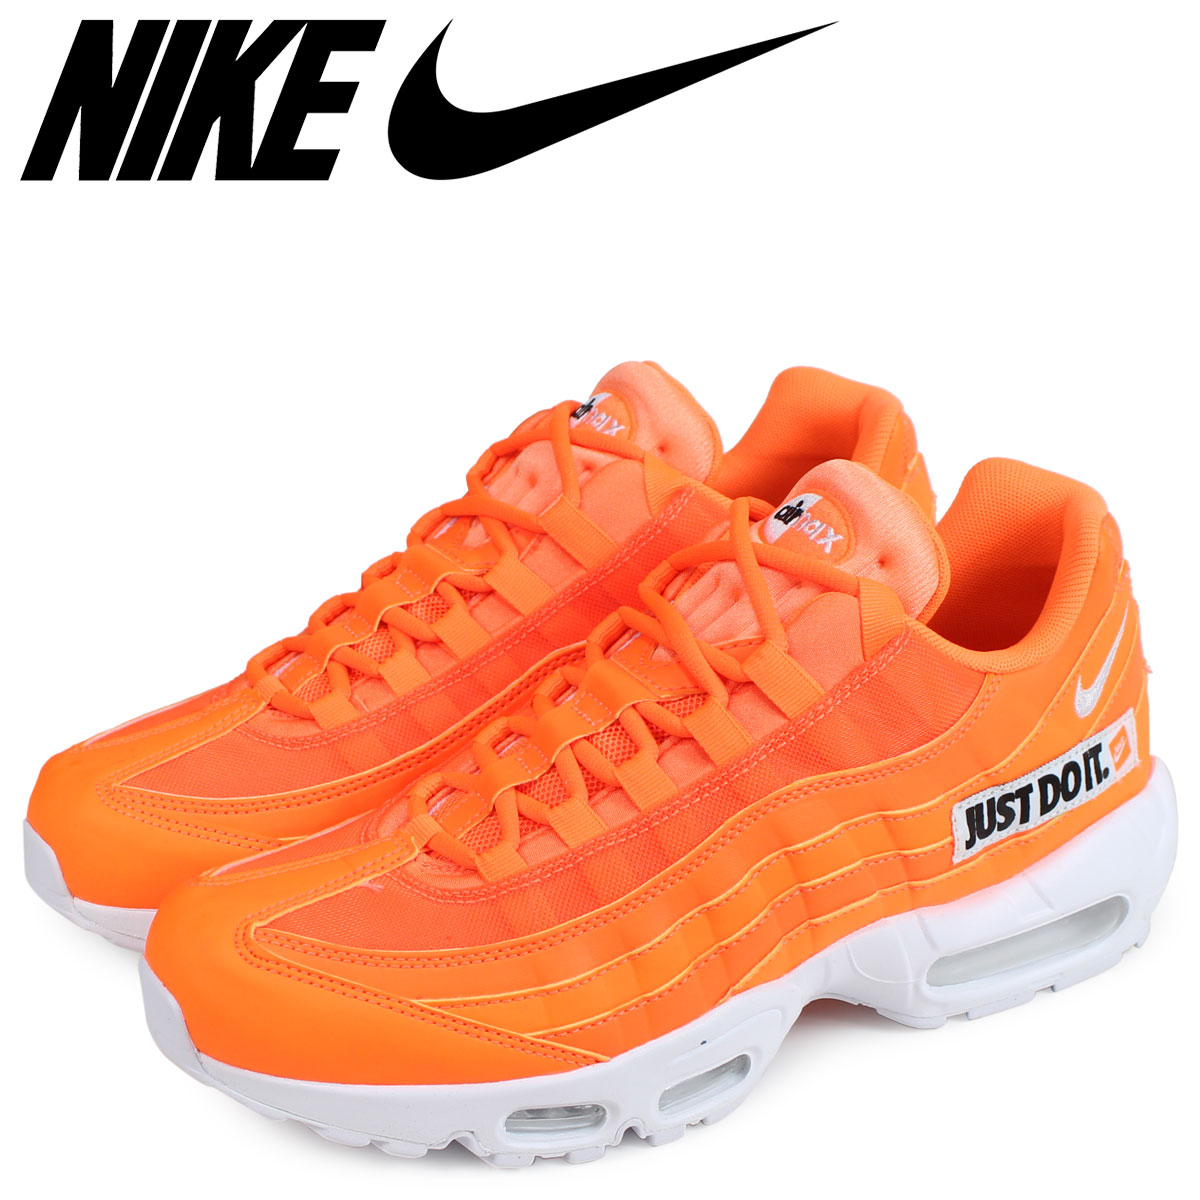 a369383d7bc NIKE Kie Ney AMAX 95 sneakers men AIR MAX 95 SE JUST DO IT orange  AV6246-800 [the 7/30 additional arrival]